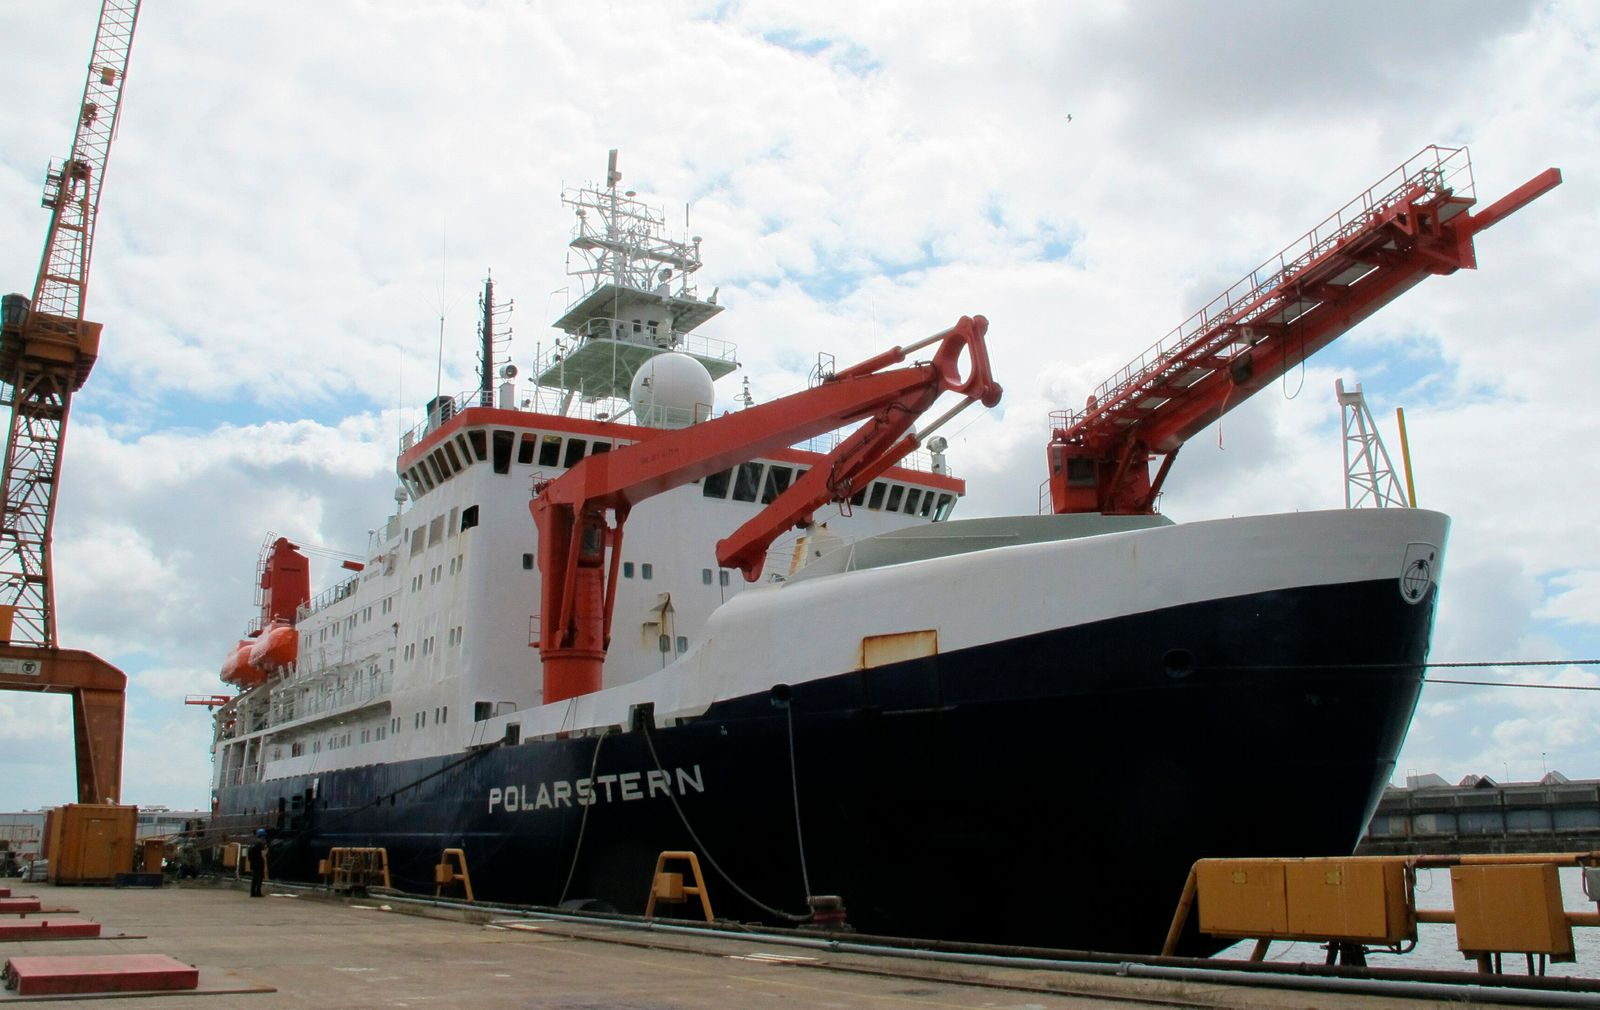 FILE - In this Wednesday, July 3, 2019 file photo the German Arctic research vessel 'Polarstern' is docked for maintenance in Bremerhaven, Germany.{ } (AP Photos/Frank Jordans, file)